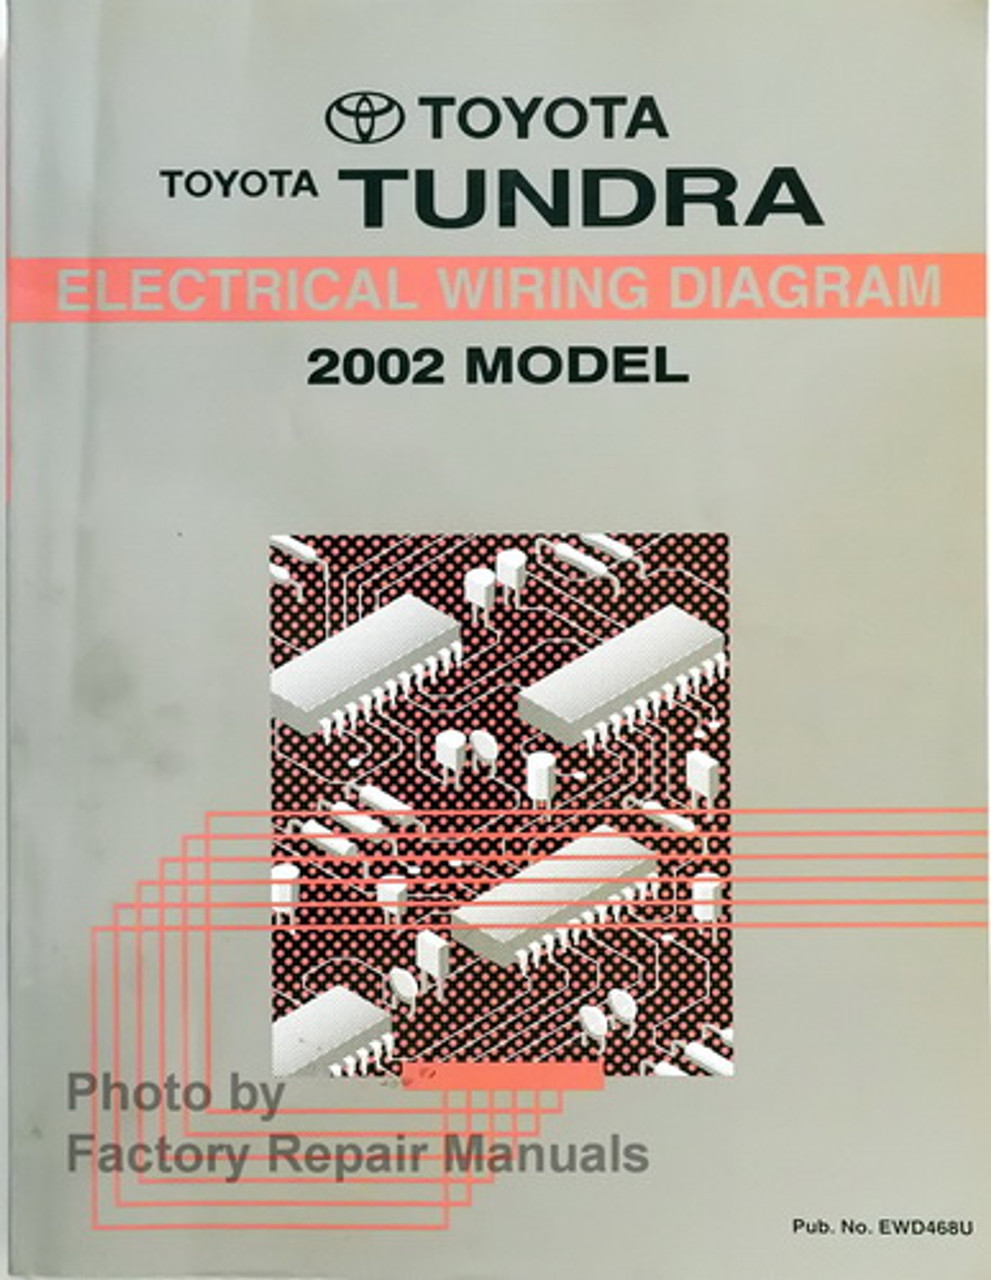 2002 tundra wiring diagram | left-anywhere wiring diagram options -  left-anywhere.autoveicoli-elettrici.it  autoveicoli elettrici